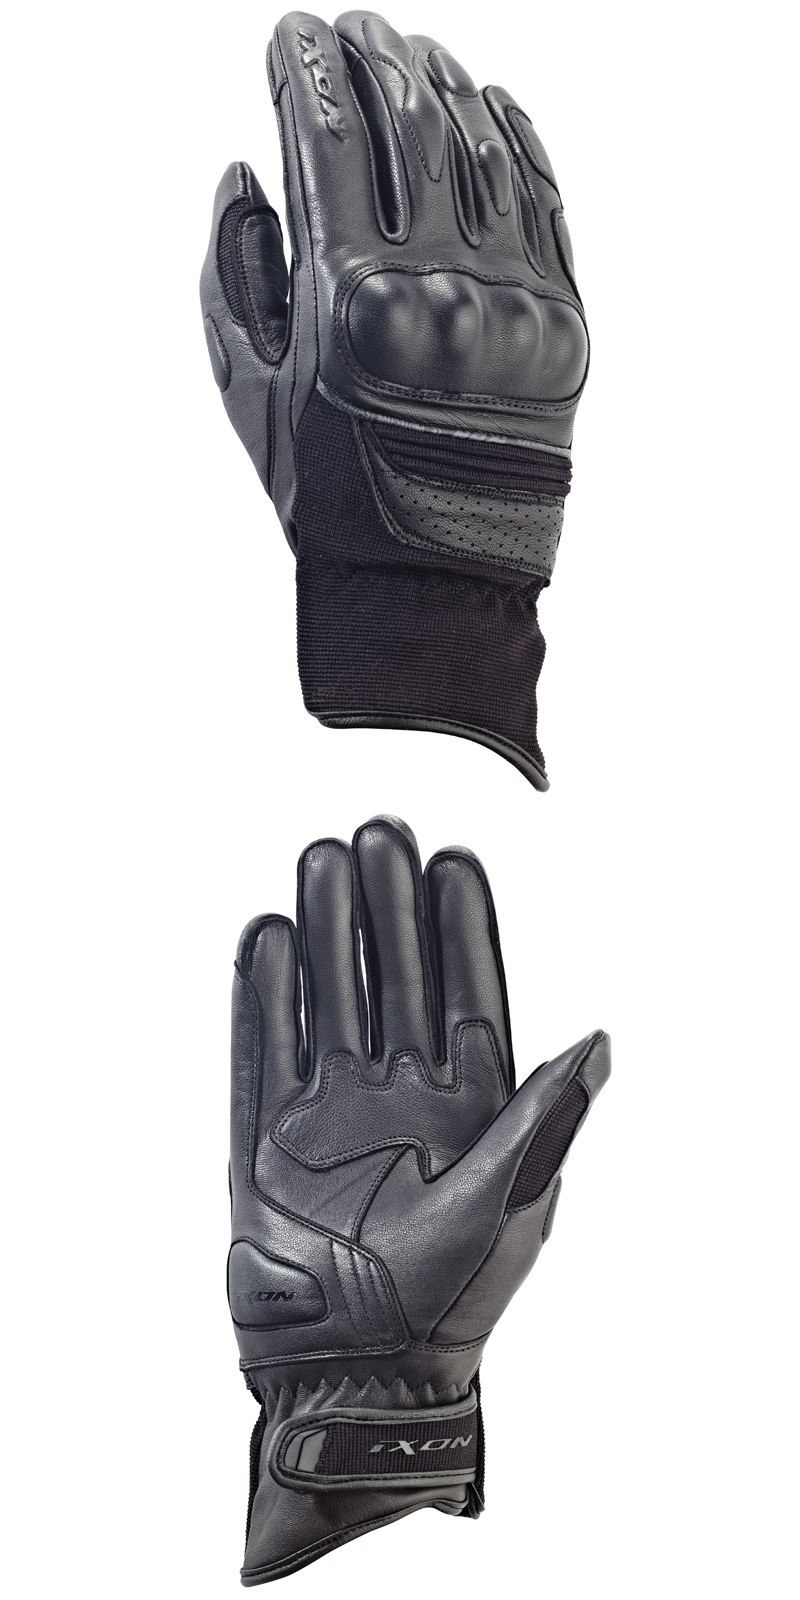 GANTS IXON RS HUNT HP beep bike nantes